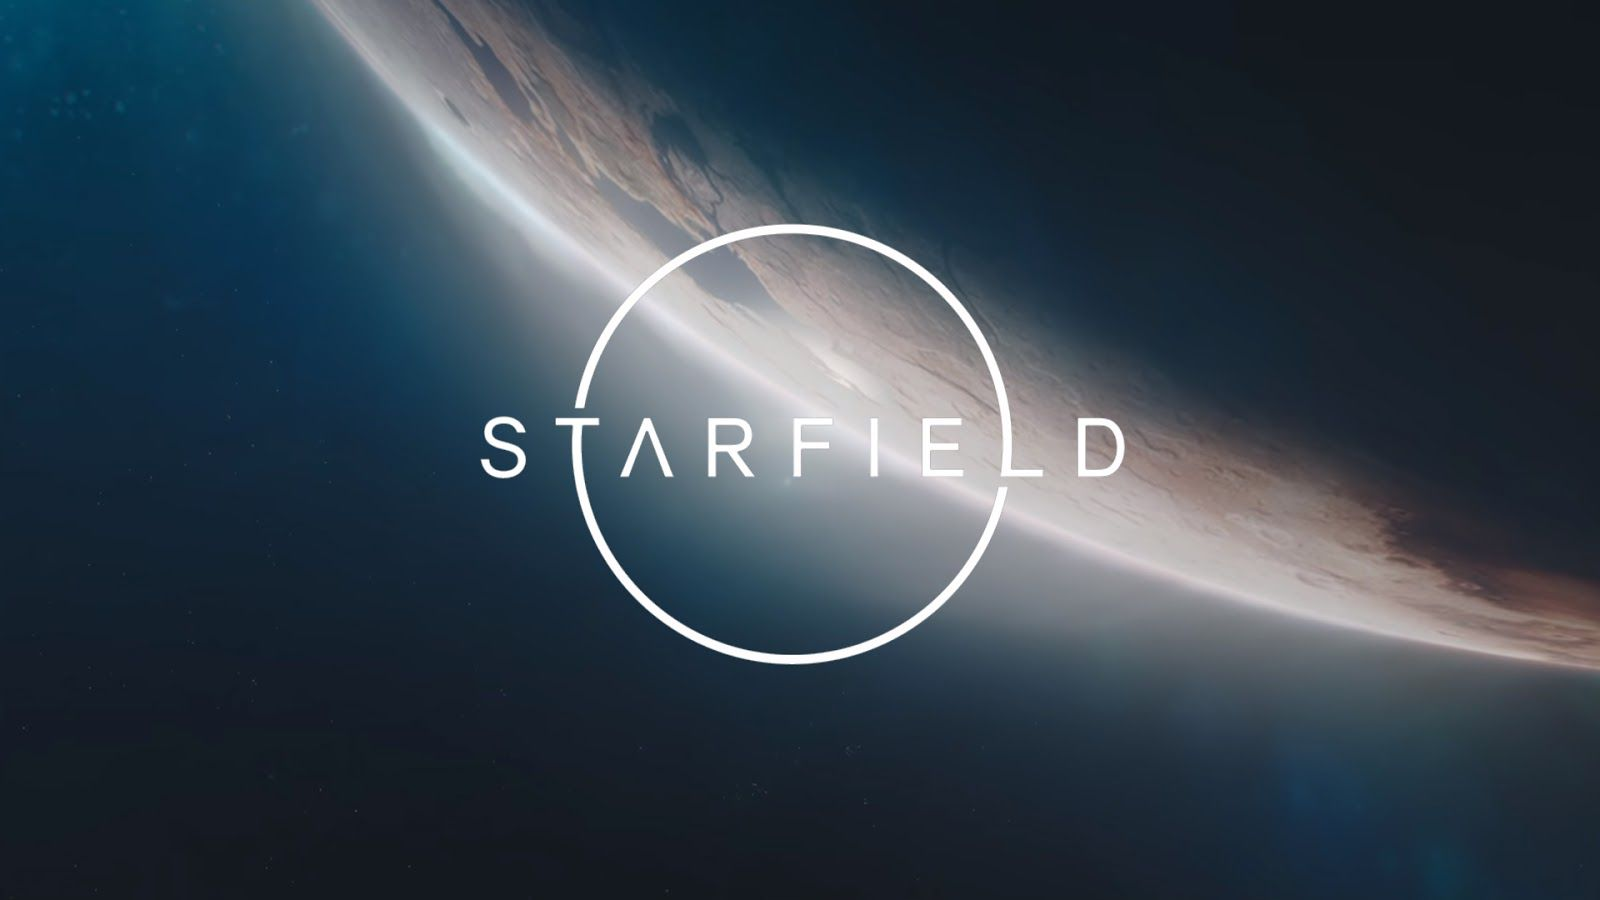 Coverart from the Starfield game